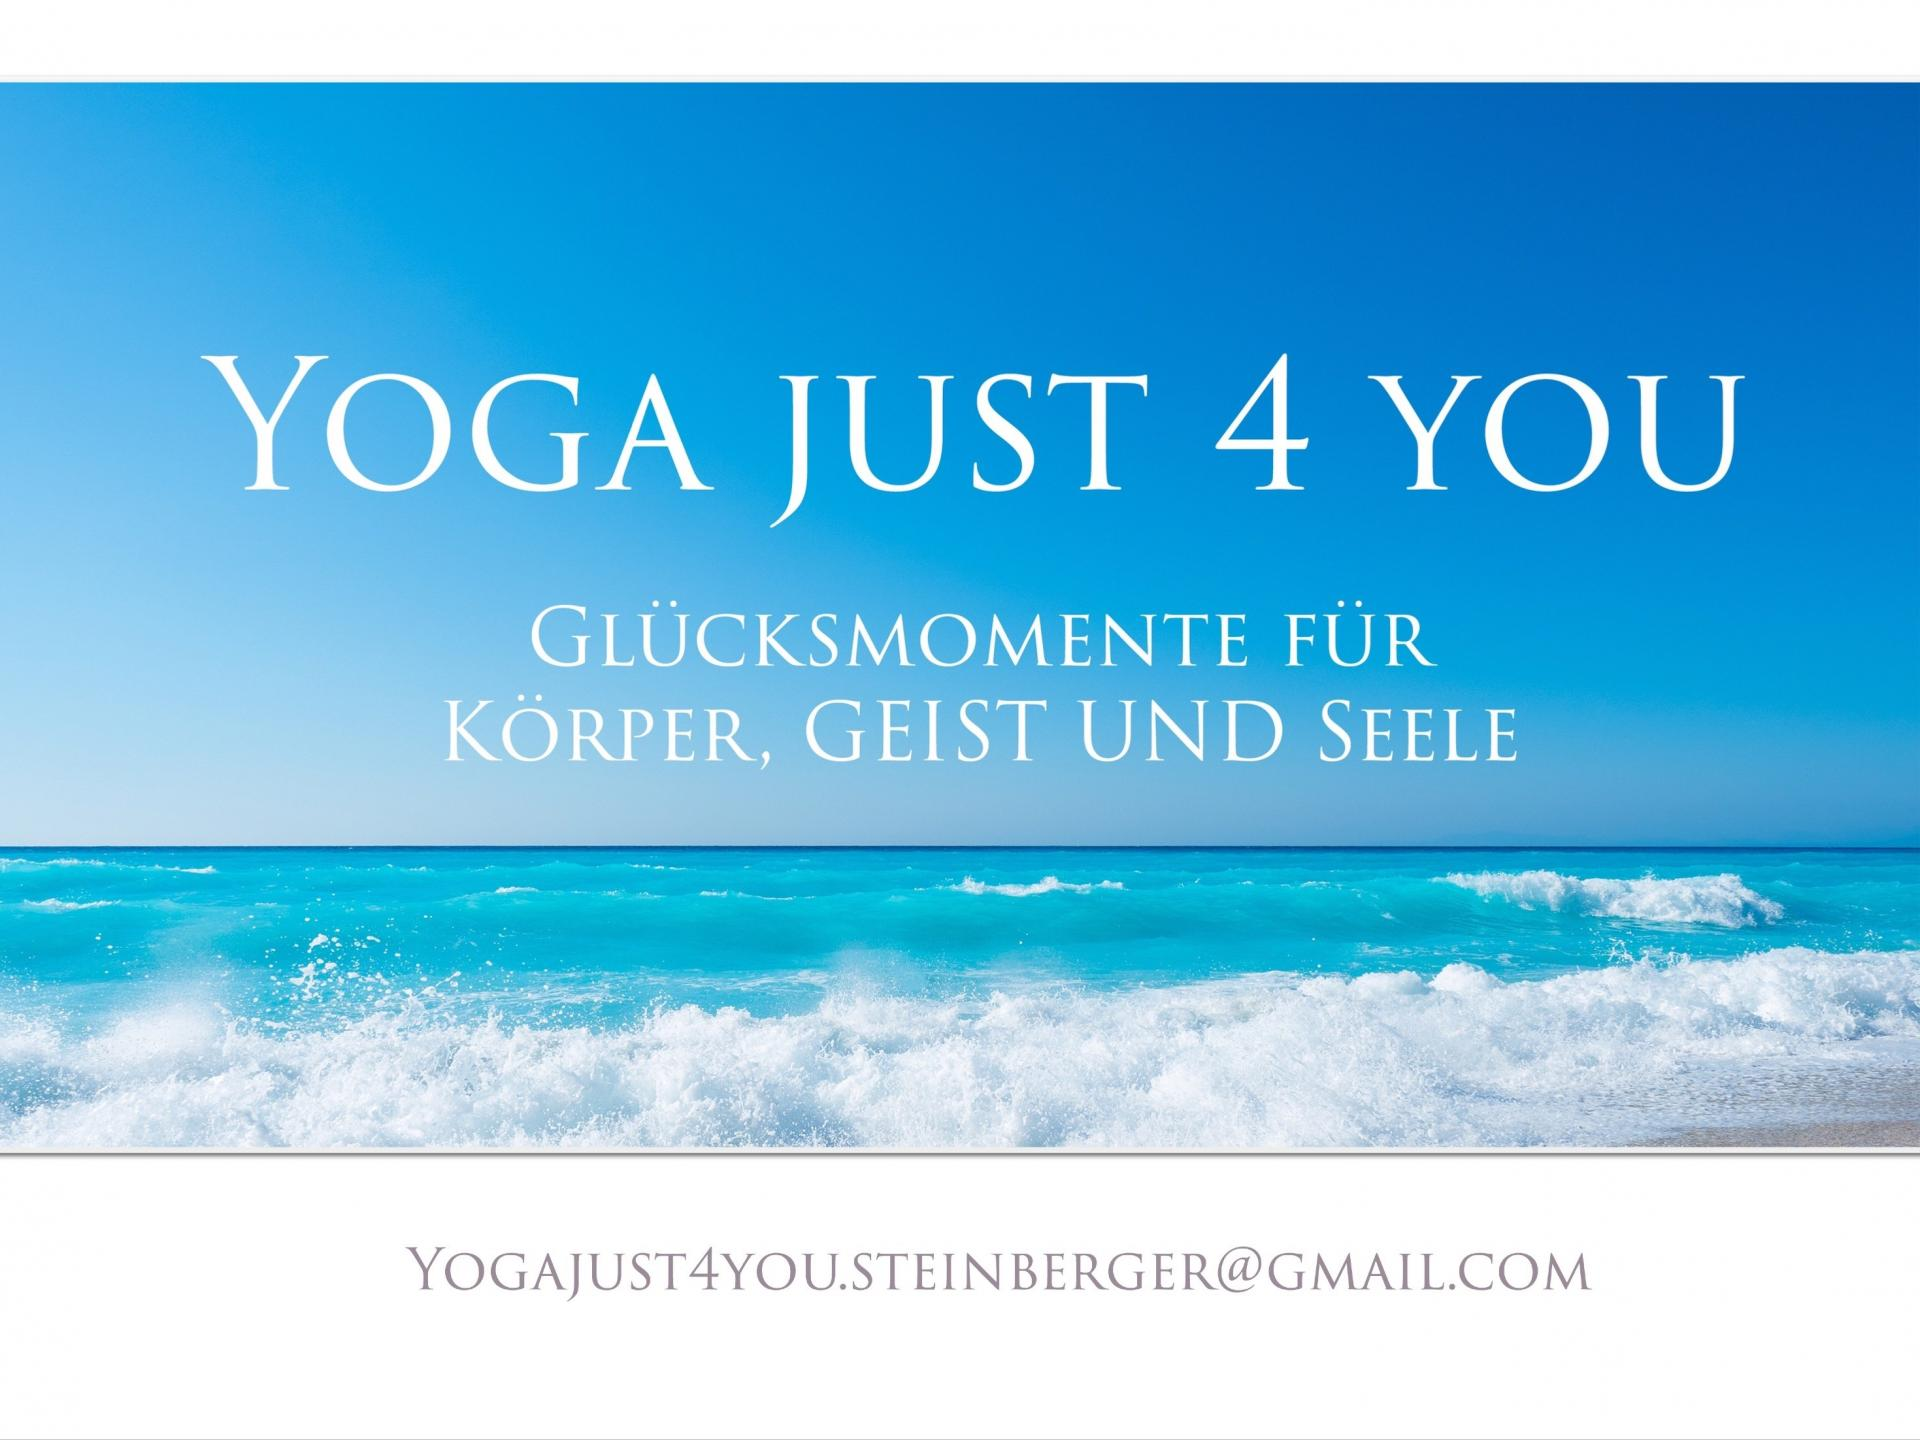 YOGA JUST 4 YOU